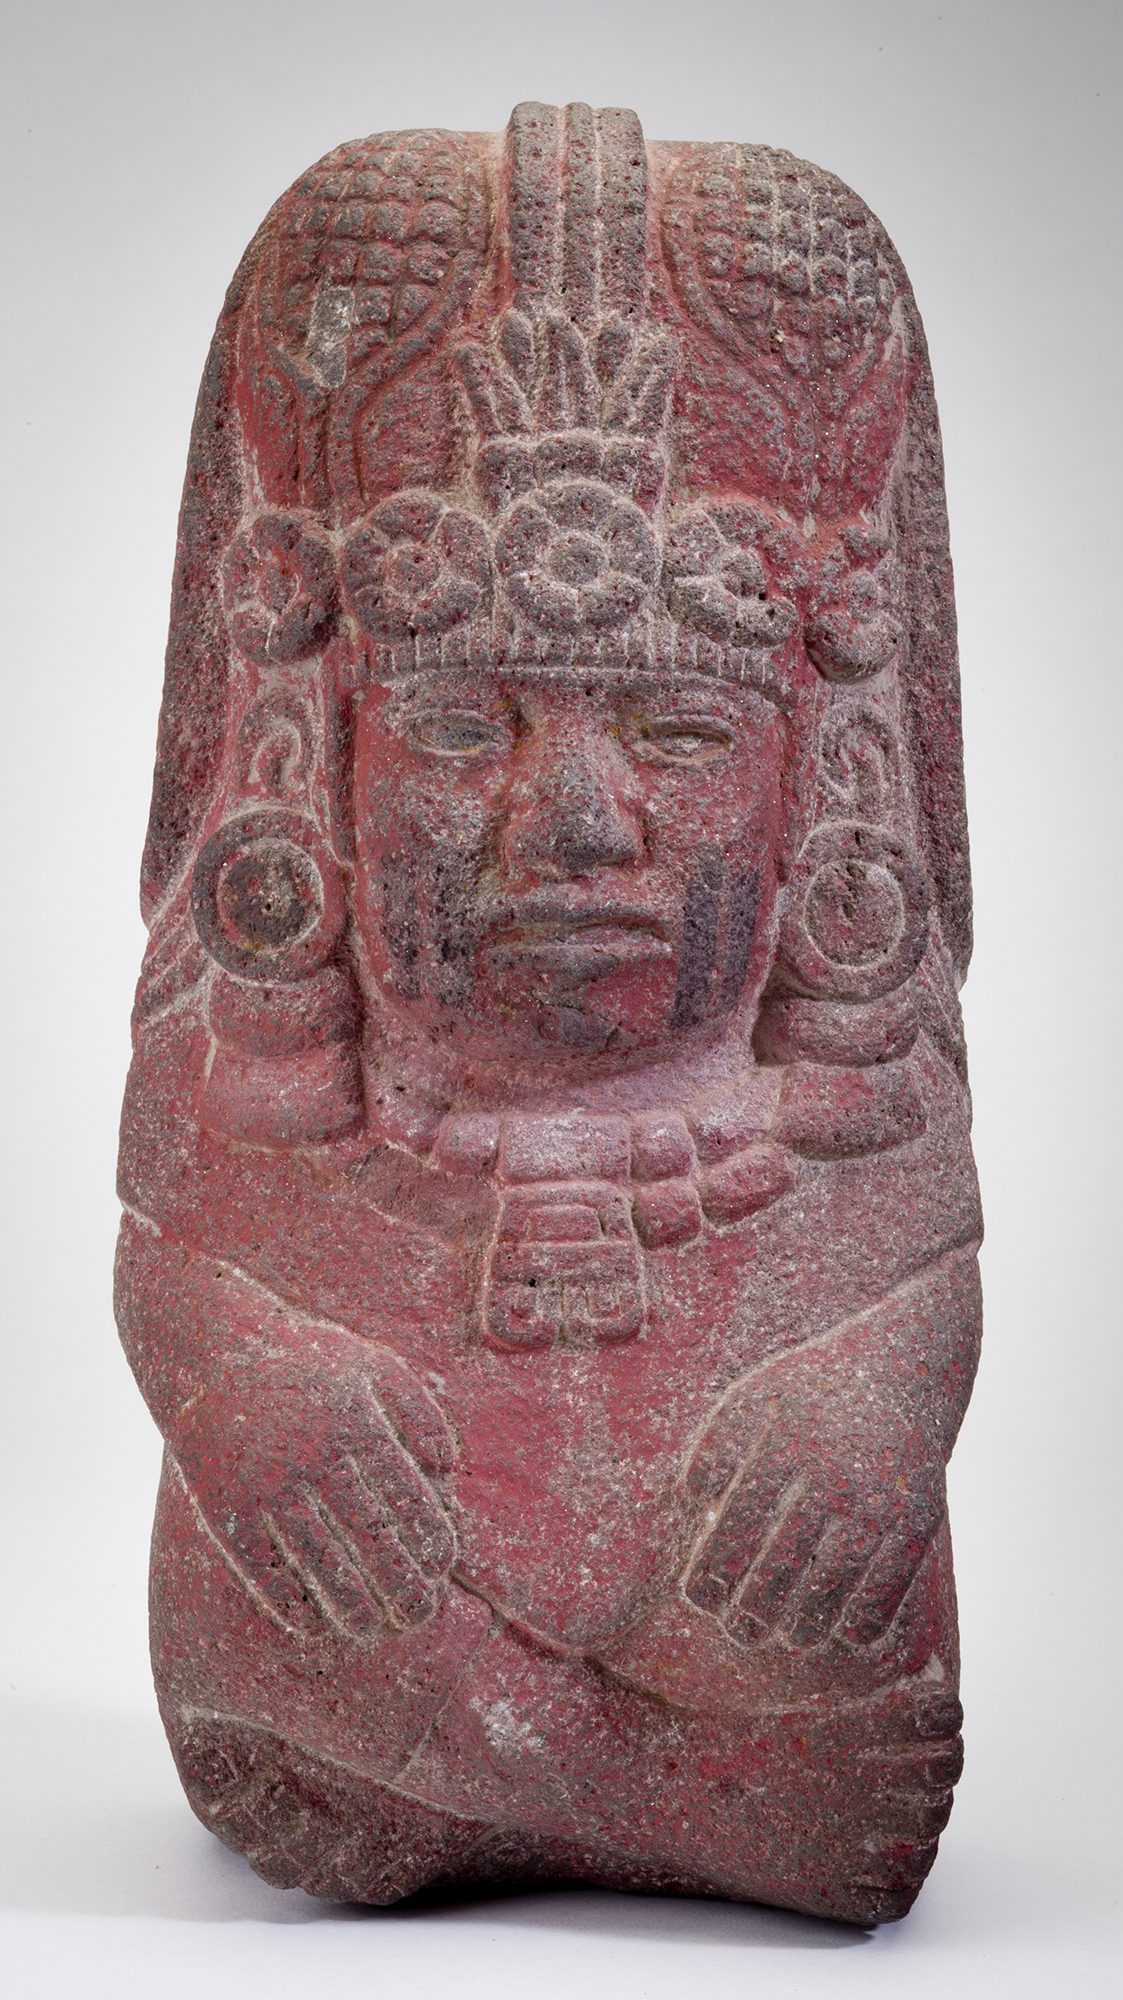 Aztec, Mexico,Fertility Goddess, 1450–1521 CE, stone, 313 3/8 x 6 5/8 x 4 5/8 in. Worcester Art Museum, Museum Purchase, 1957.143. Photo credit: Image © 2017 Worcester Art Museum, all rights reserved.